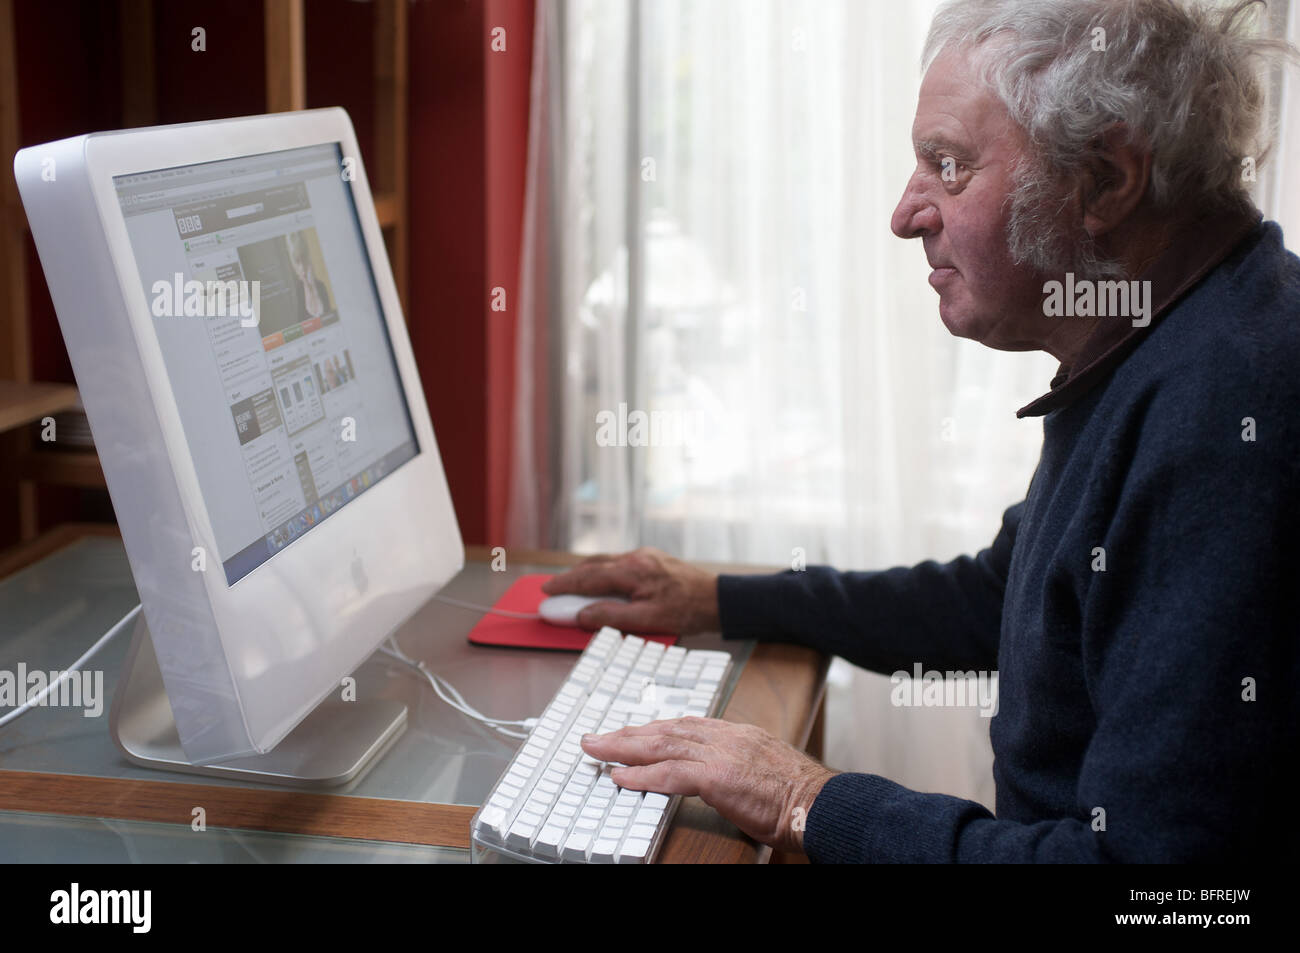 Elderly man at home using a computer to access the internet, Suffolk, UK. - Stock Image